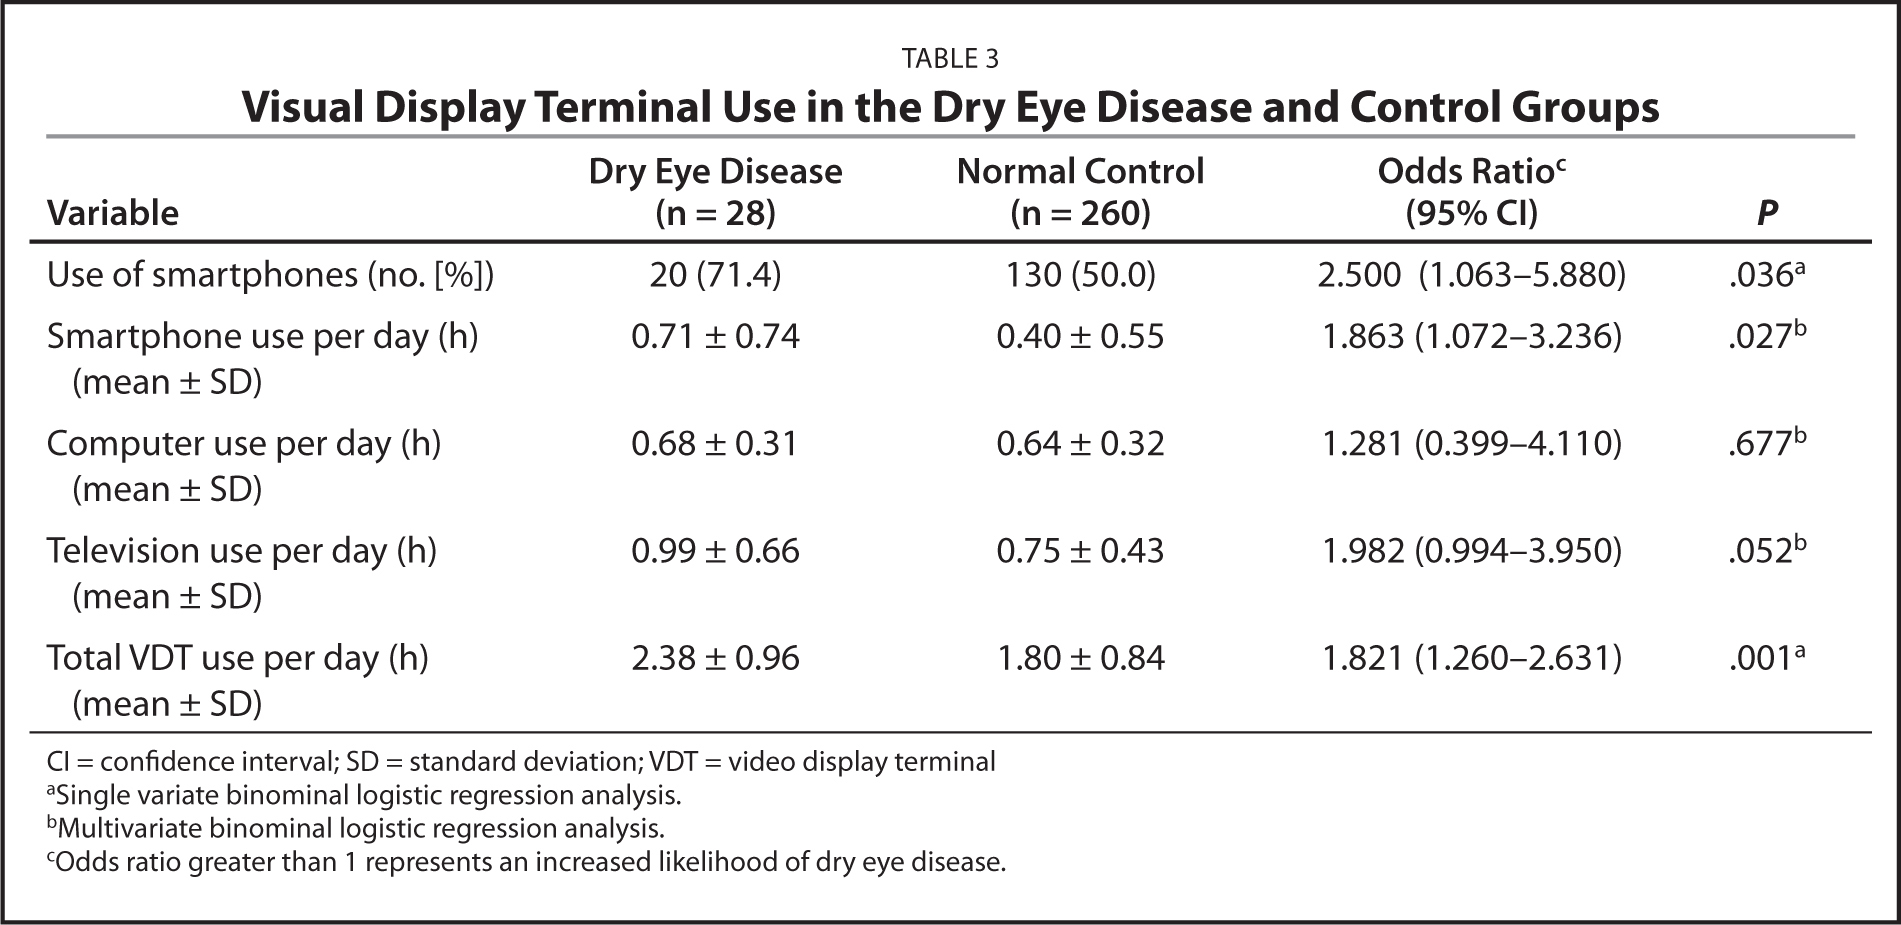 Visual Display Terminal Use in the Dry Eye Disease and Control Groups